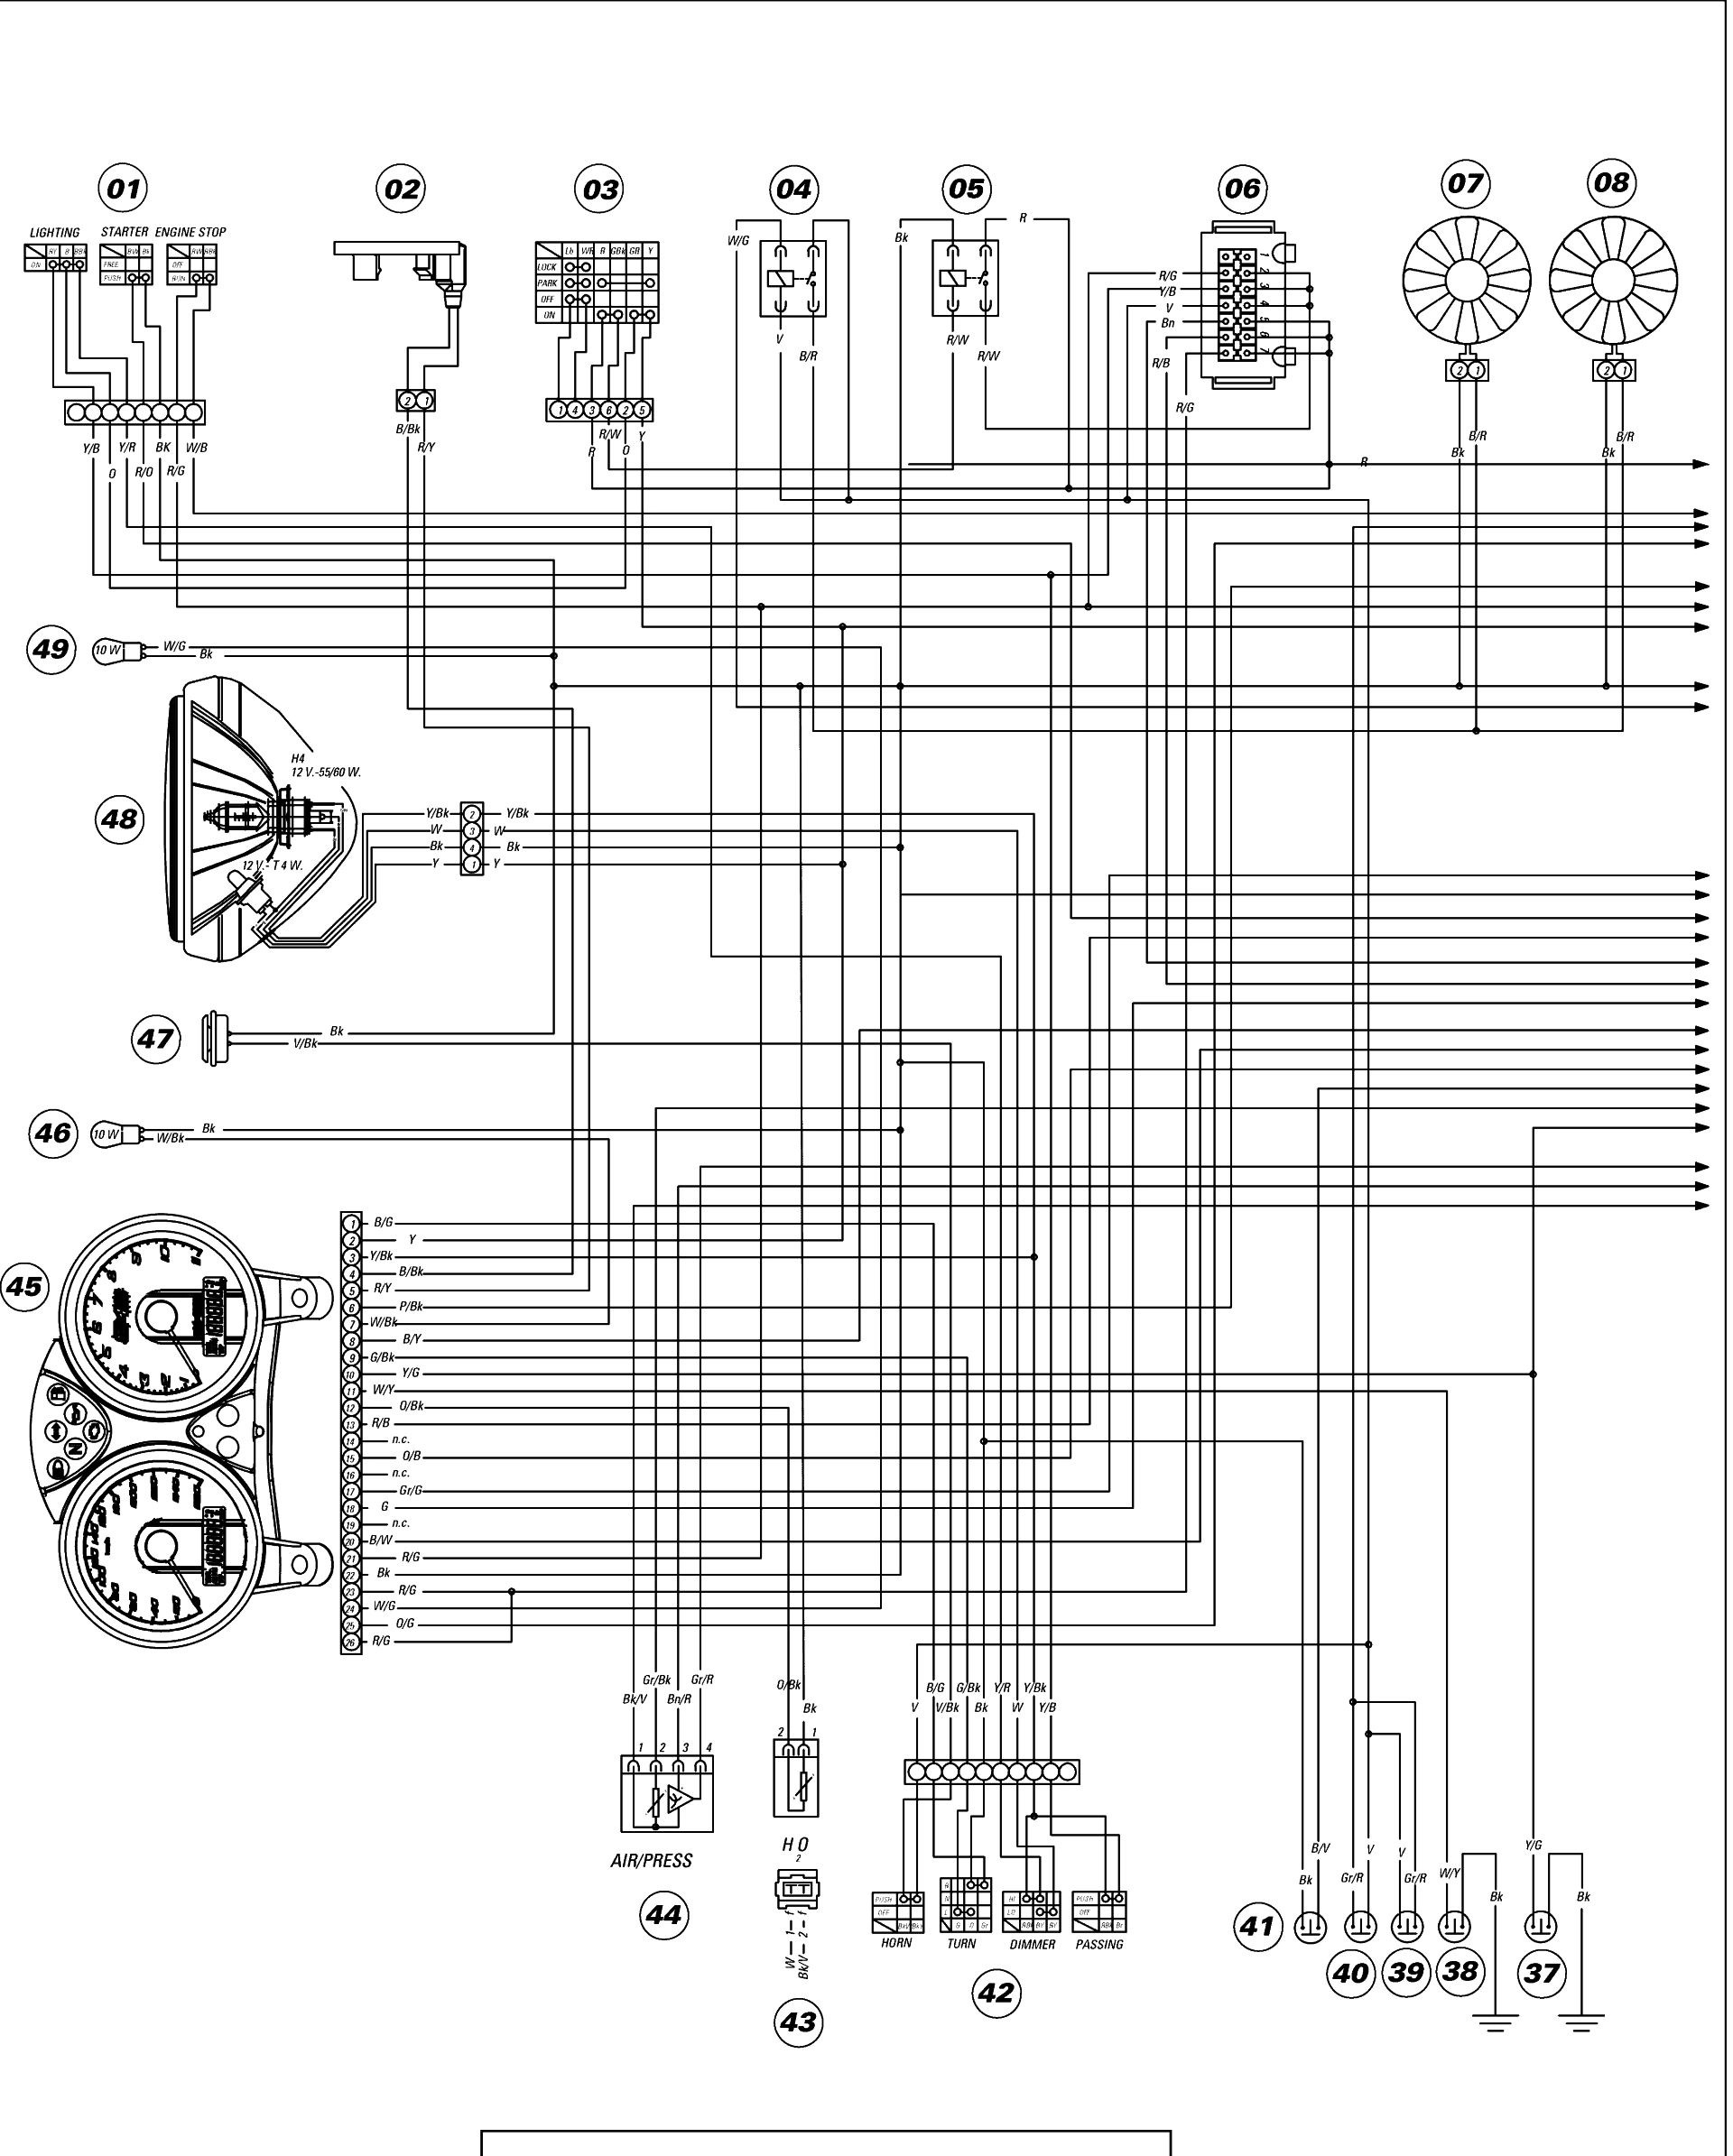 ducati 900 s2 wiring diagram schematic diagram download